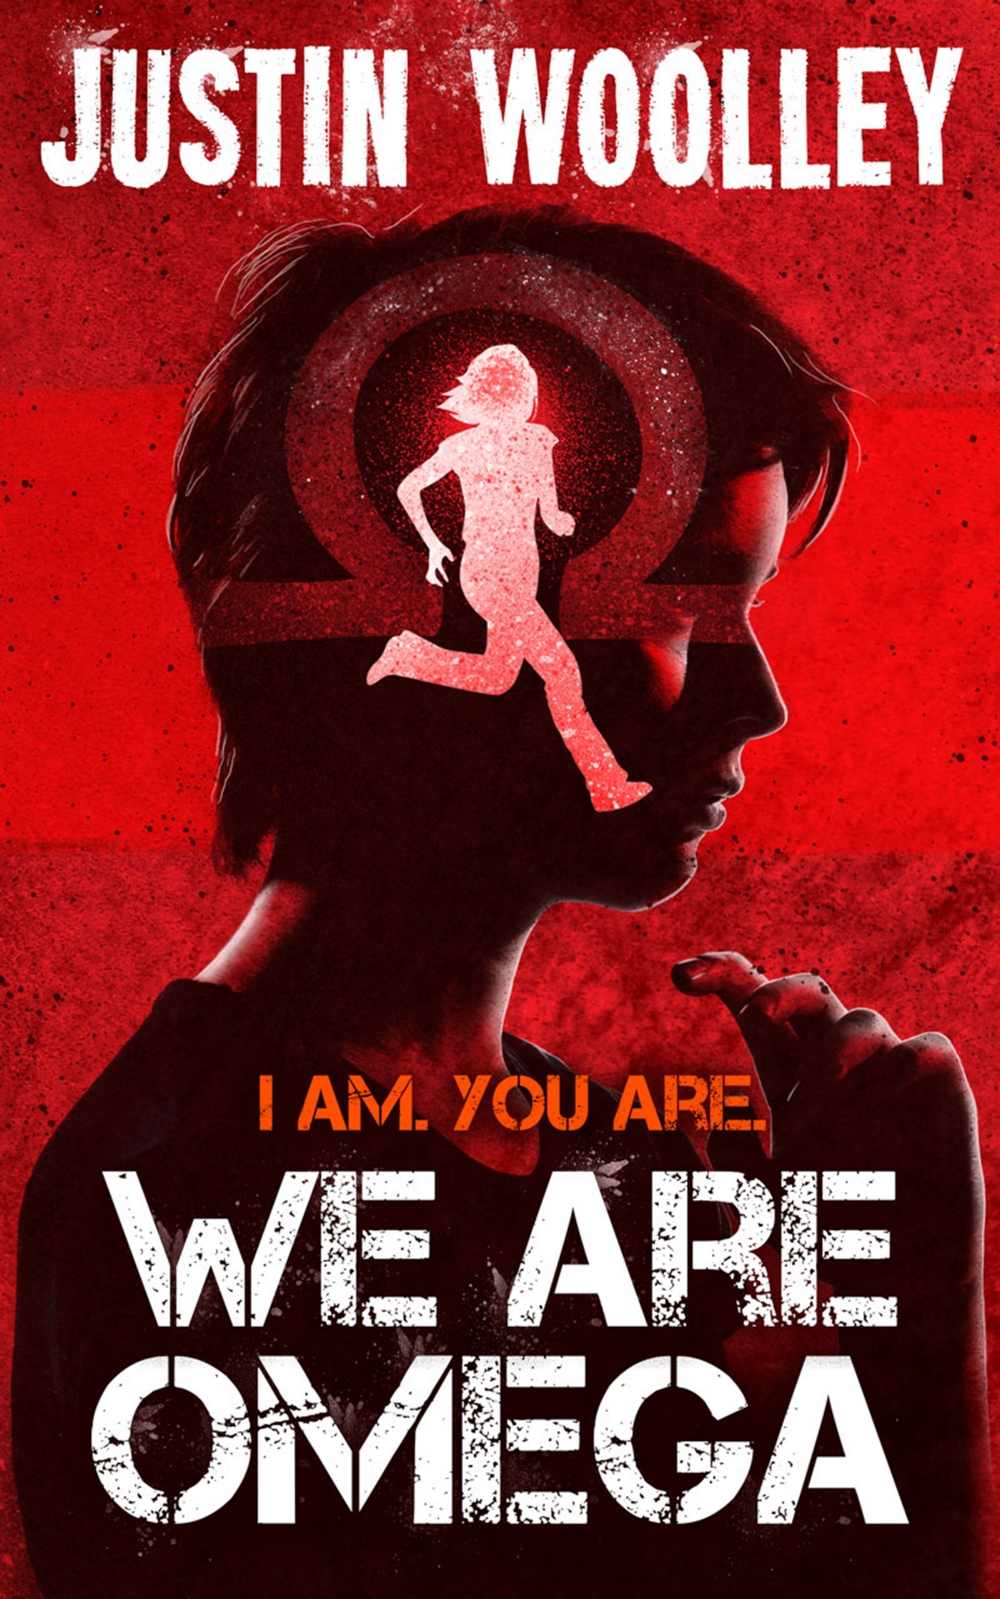 WE ARE OMEGA - My new book WE ARE OMEGA is out December, 10th an is available for pre-order now! Here's the blurb:I AM. YOU ARE. WE ARE OMEGA.Six years ago an alien spacecraft crashed into the remote Nevada desert, releasing a virus that killed one-fifth of the Earth's population.Molly McManus, who lost her parents to the plague, can't forgive the aliens just because they give humanity a few new toys. For Wells Marsden, a computer hacker desperate to atone for his past, the aliens might just offer the fresh start he needs.Both Molly and Wells find themselves, for very different reasons, at the Institute for the Betterment of Humanity – a prestigious facility for gifted youth to learn from the aliens. But when they discover Earth's visitors aren't as benevolent as they claim they must escape the Institute, join a mysterious resistance group known only as Omega, and save humanity from disaster – so long as humanity itself doesn't get in their way.WE ARE OMEGA is a science fiction adventure featuring hacking, telekinetic powers, giant alien crabs out to control the planet and two troubled teens who just might be the best hope we have. It's a thundering read for fans of Illuminae, The 5th Wave, and I Am Number Four.